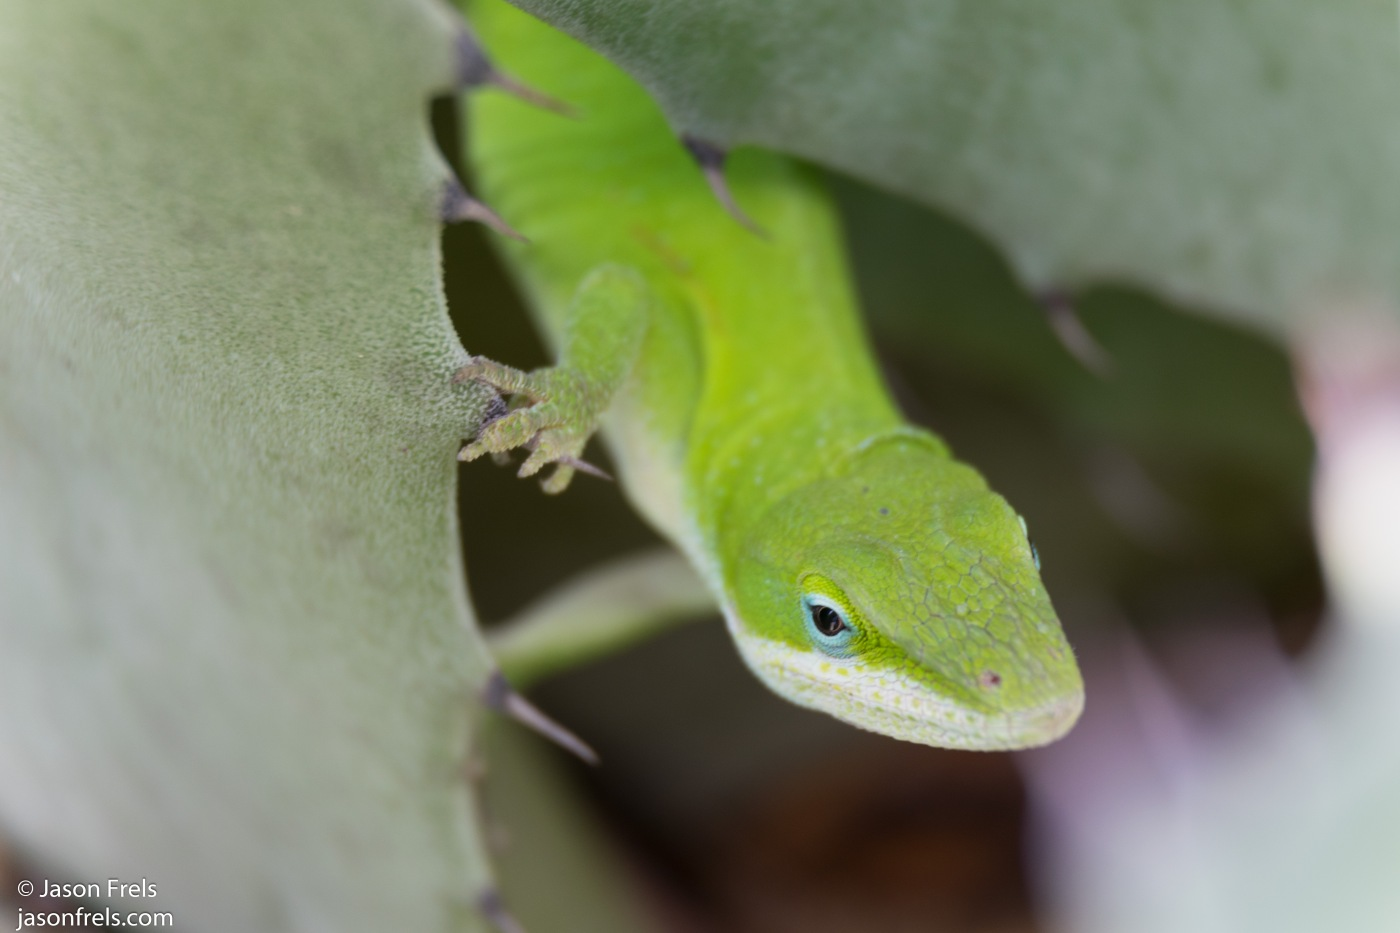 Close up of green lizard Texas backyard wildlife